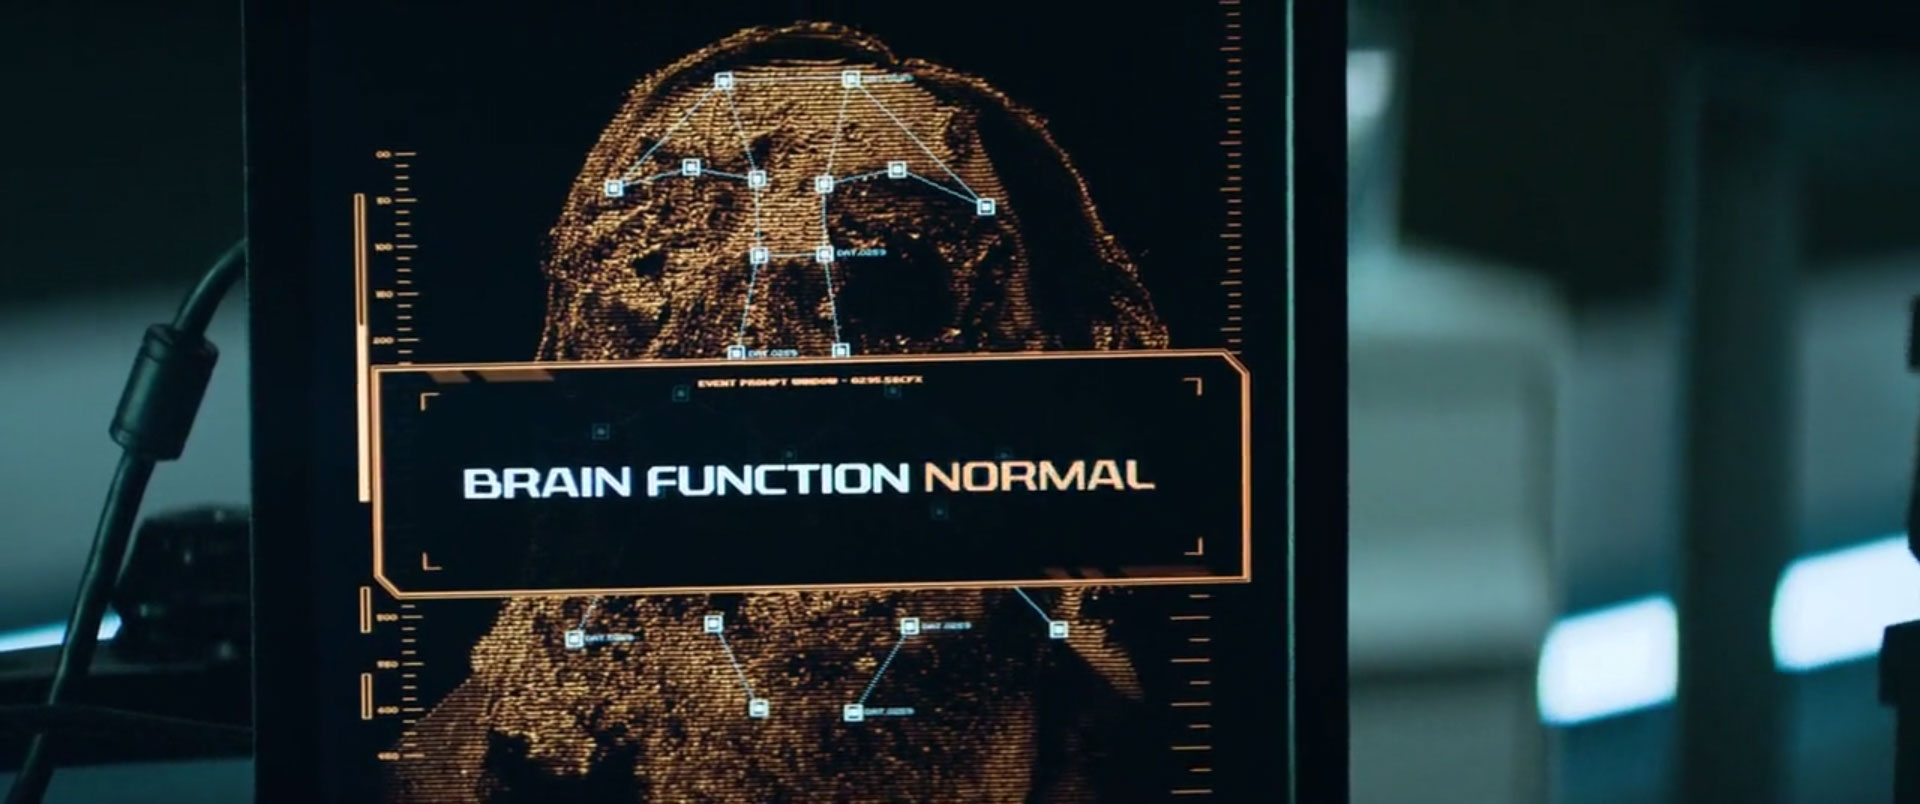 brain function normal